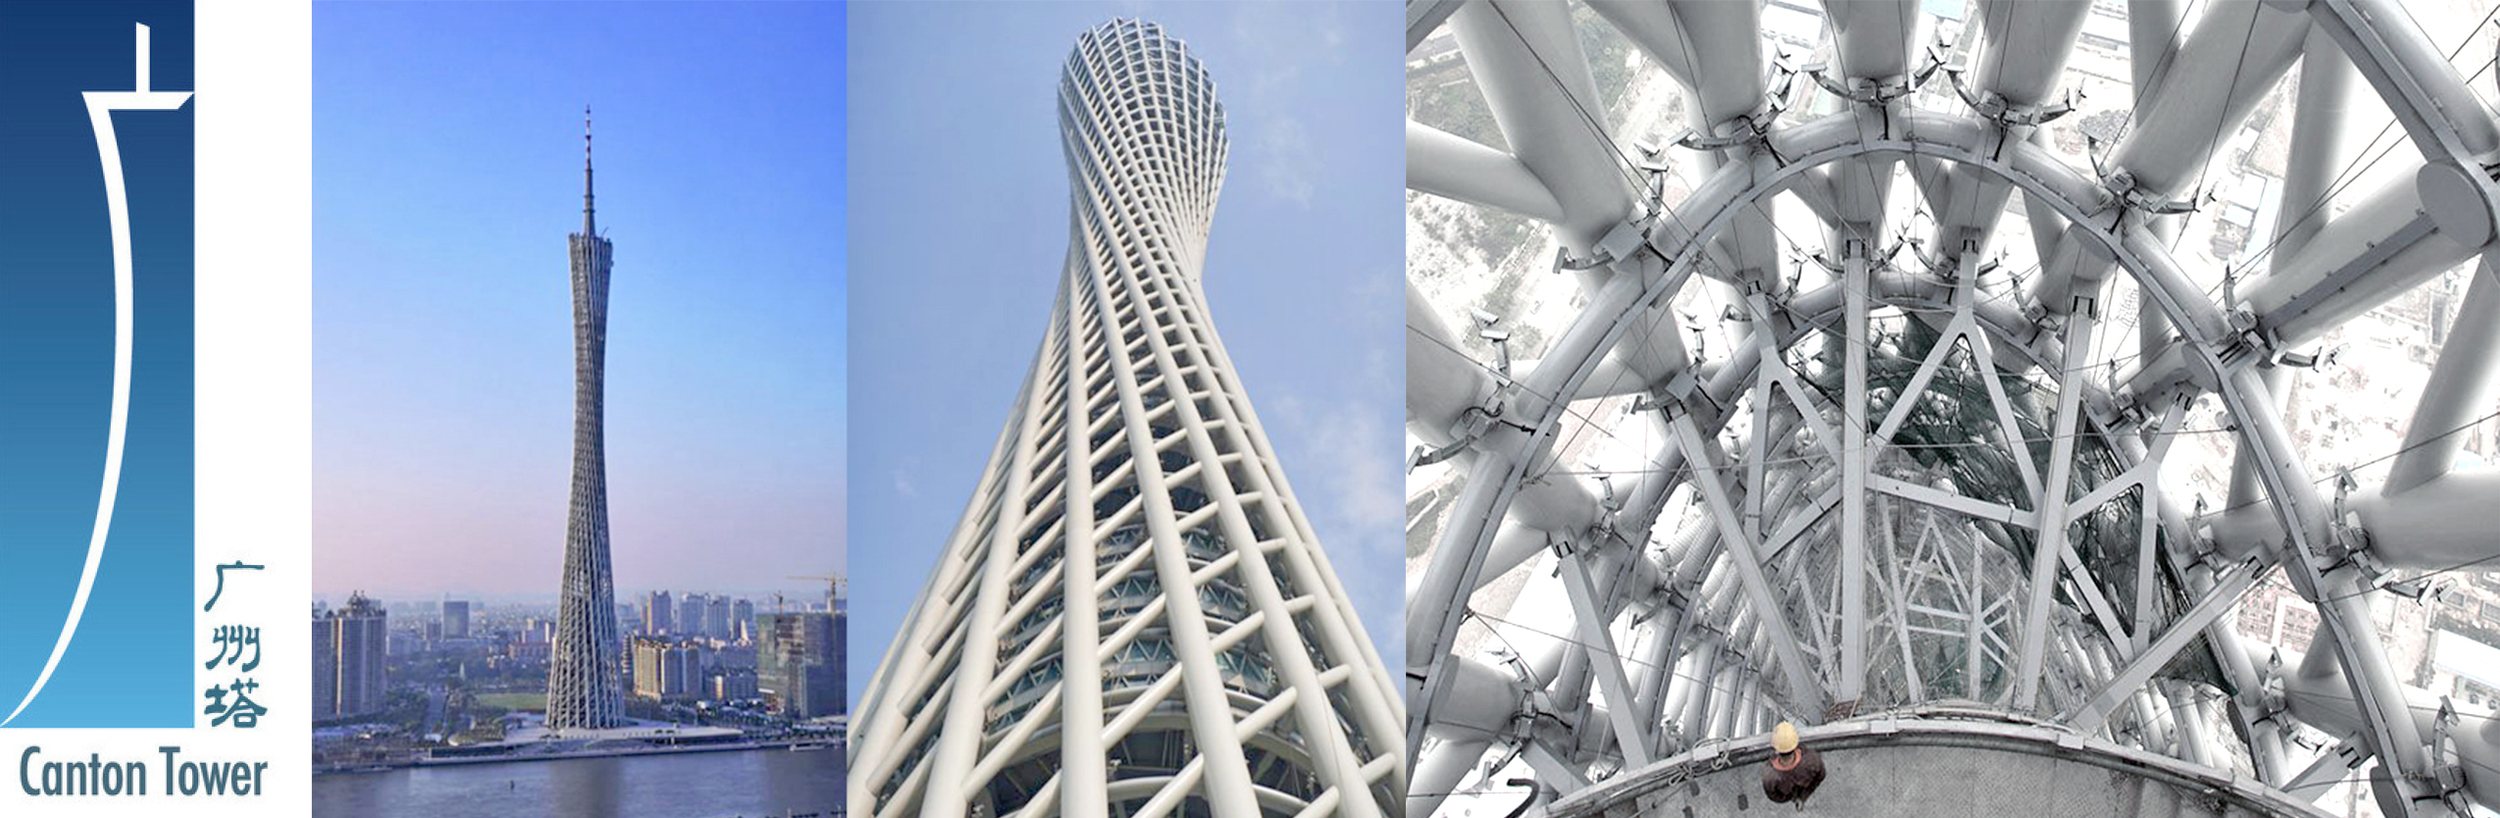 The appearance and thelogo of the Canton Tower is the main inspirations of my icon set.I aimed to create a set of icons that corresponds to the style of the tower.